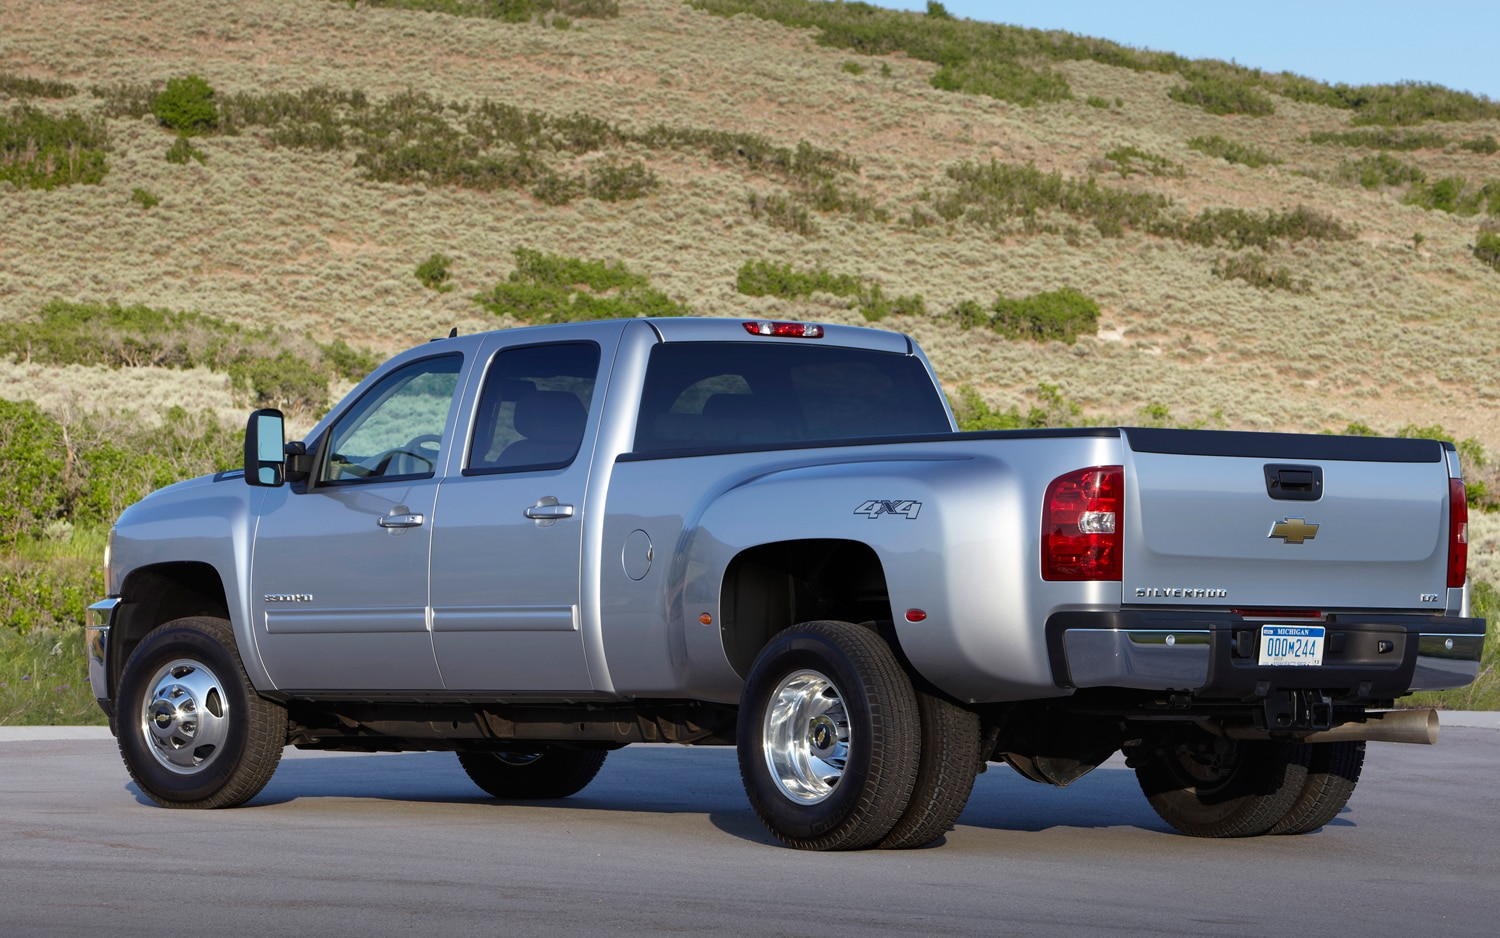 2013 Chevrolet Silverado HD Rear View